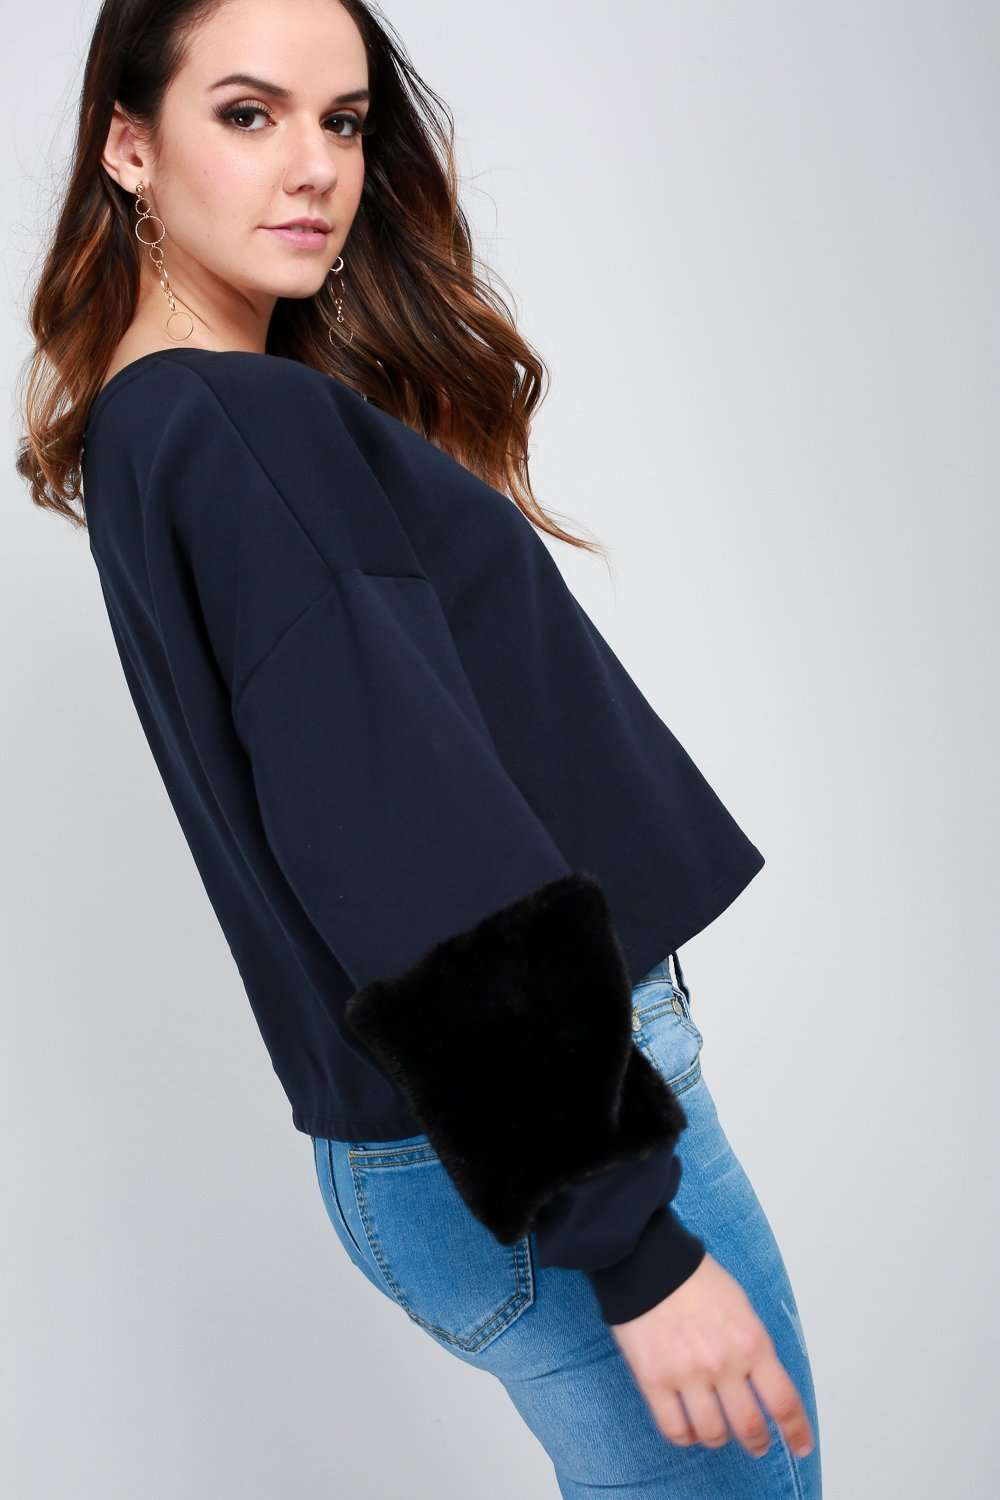 Becci Faux Fur Long Sleeve Cropped Sweatshirt - bejealous-com